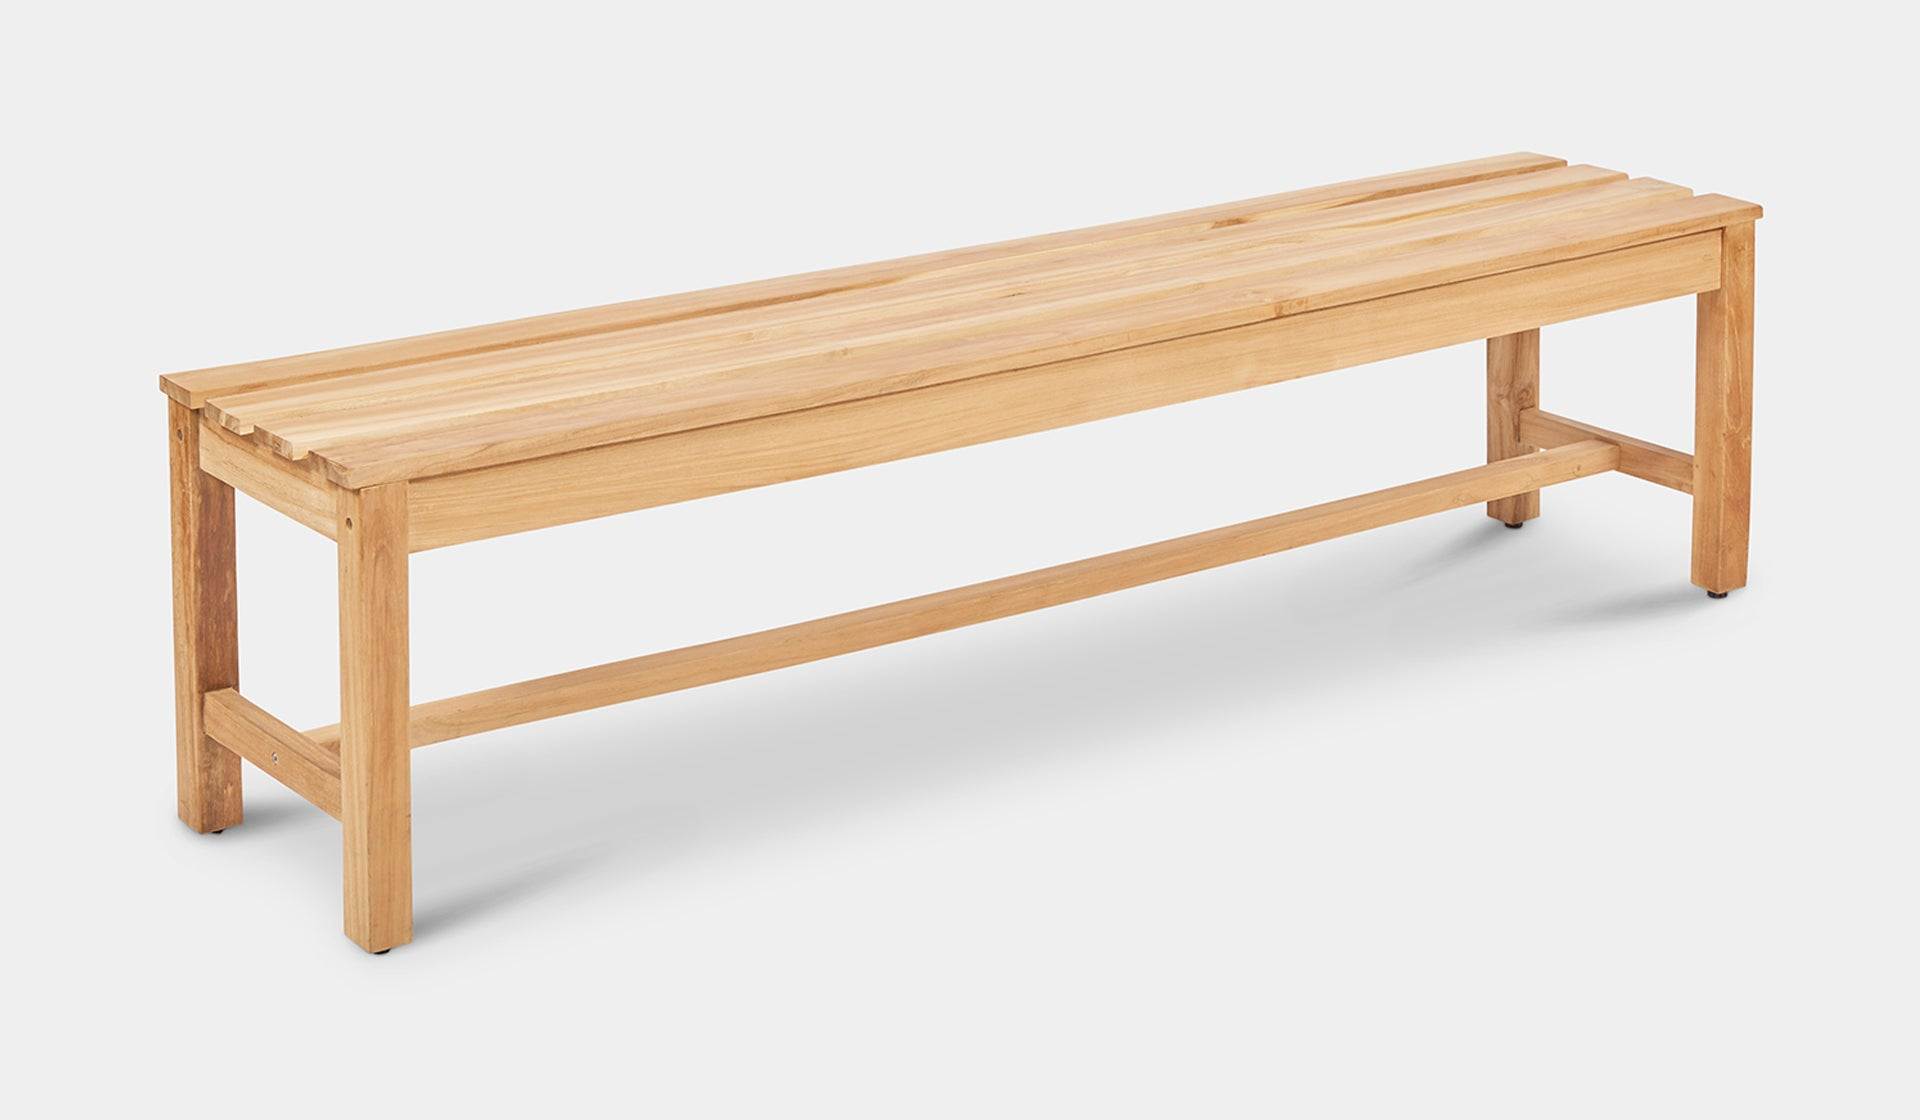 Teak-Lindon-table-with-bench-3